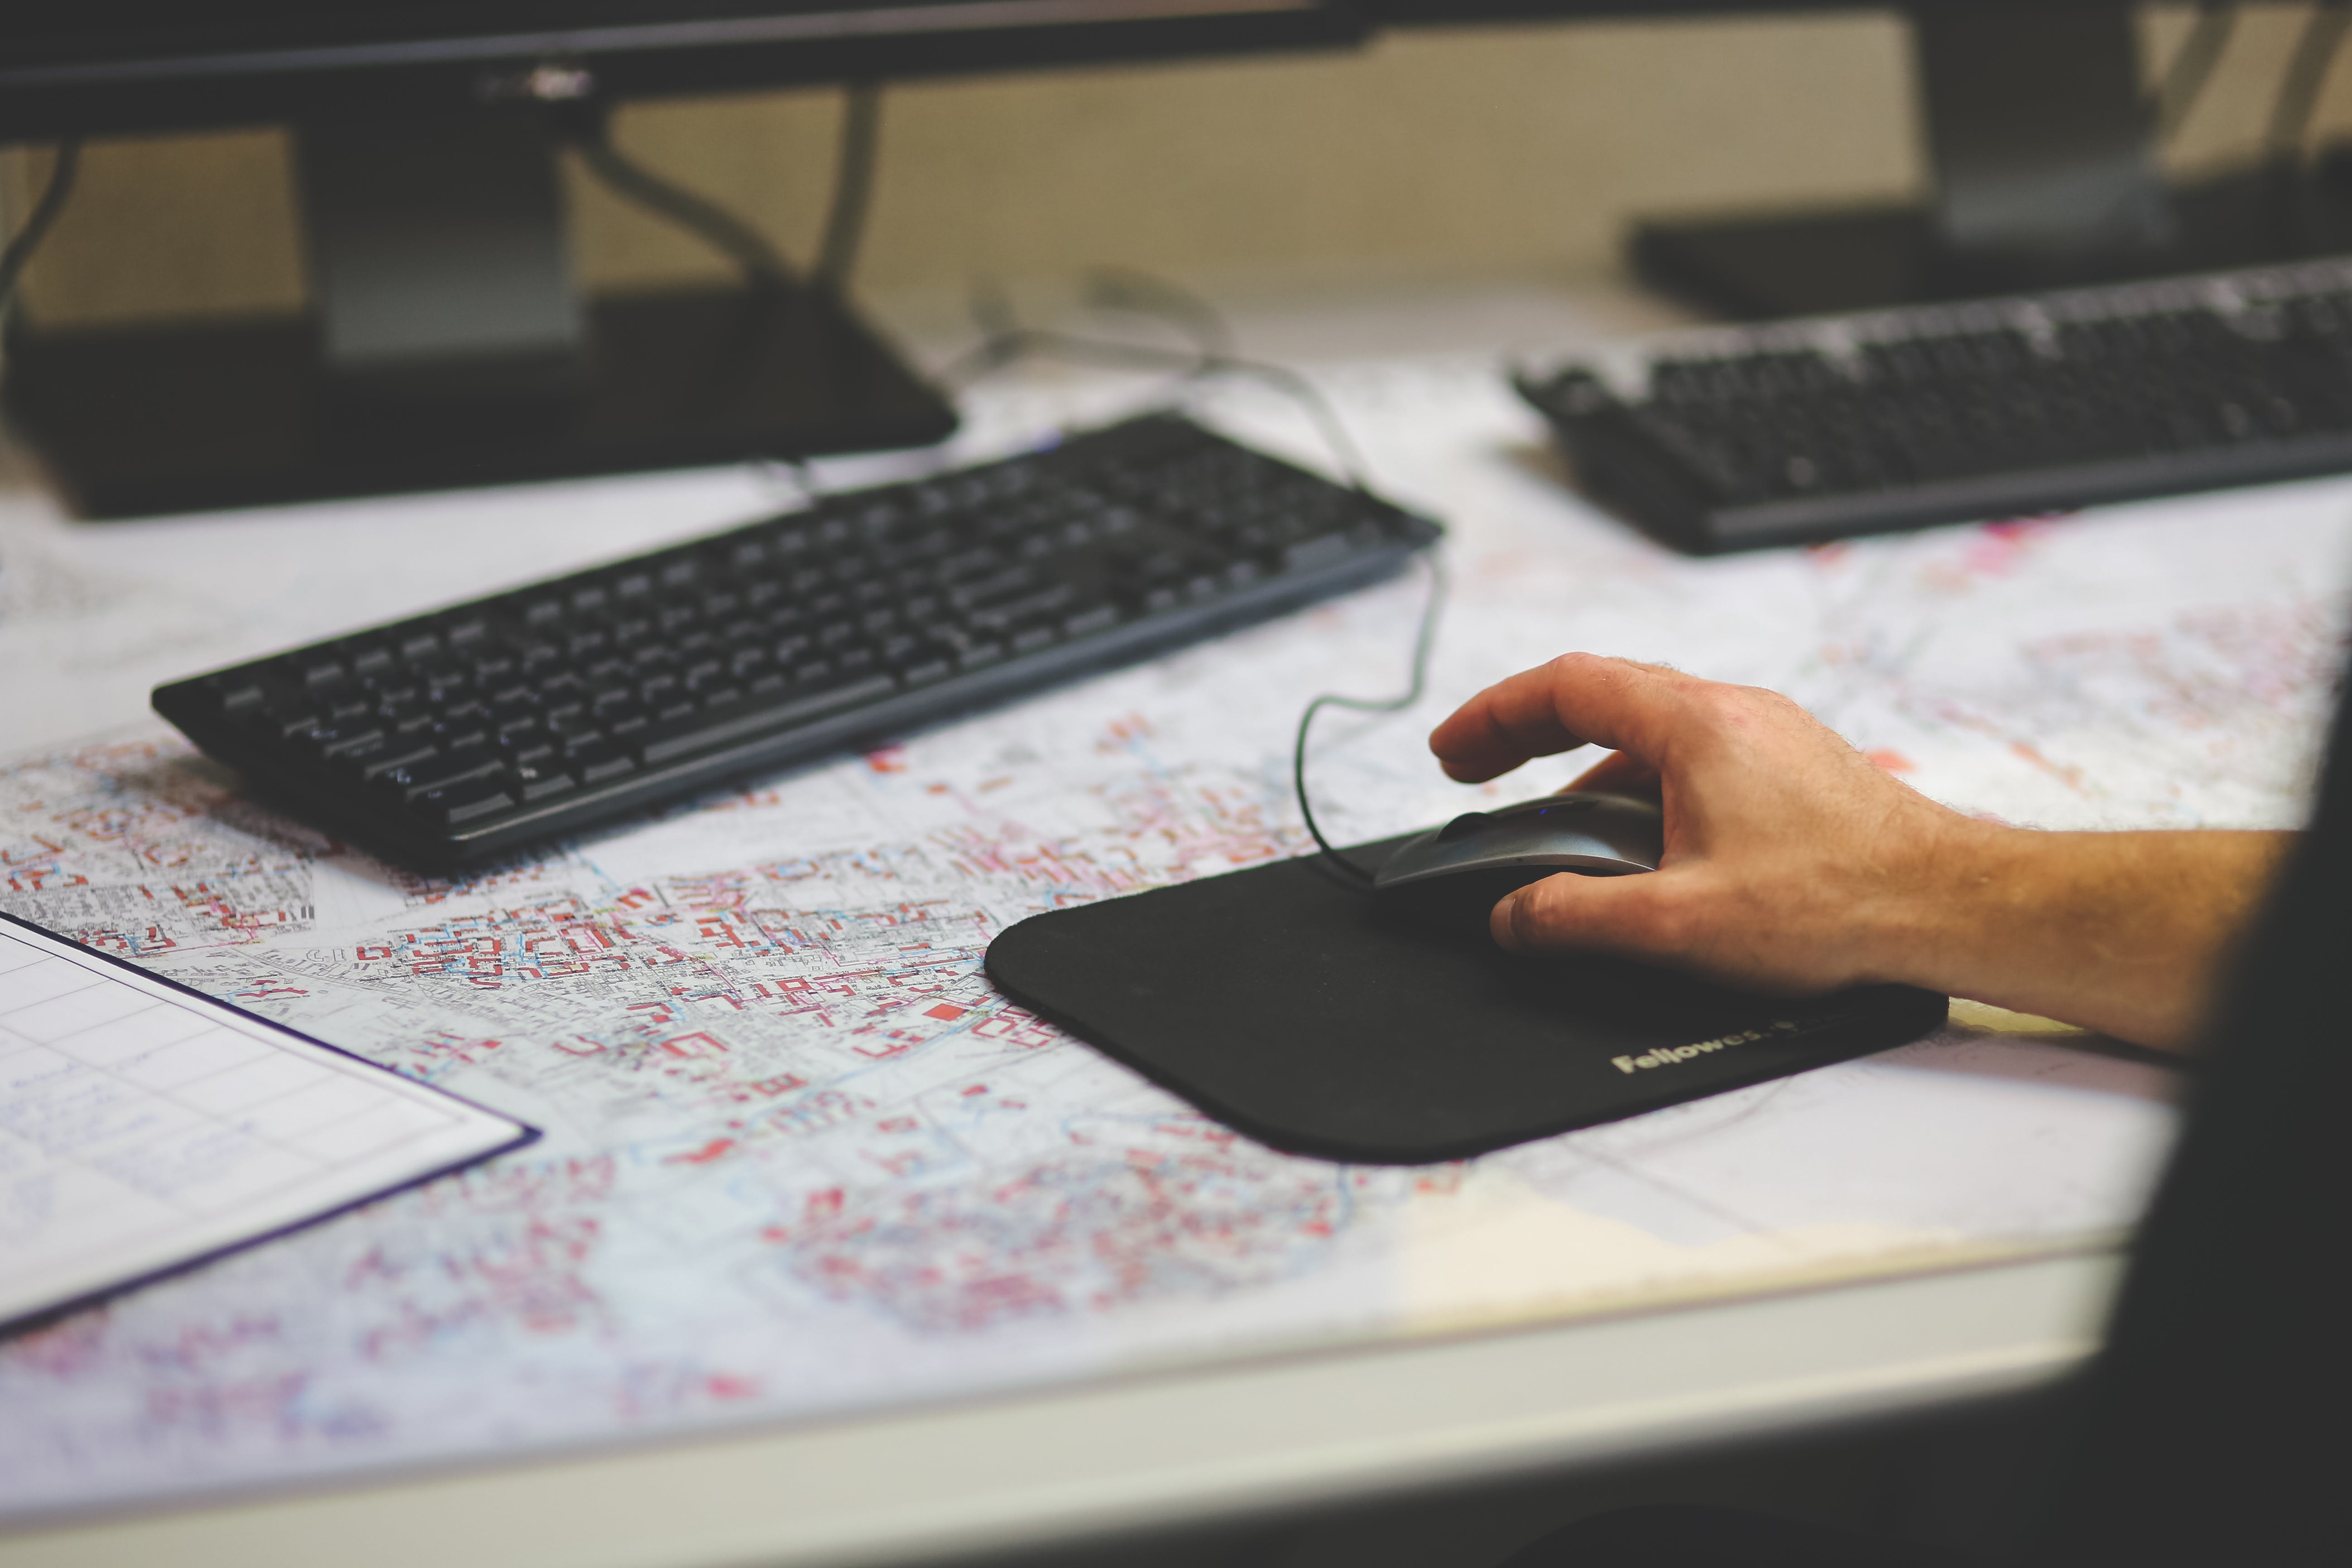 Men's hand on the computer mouse